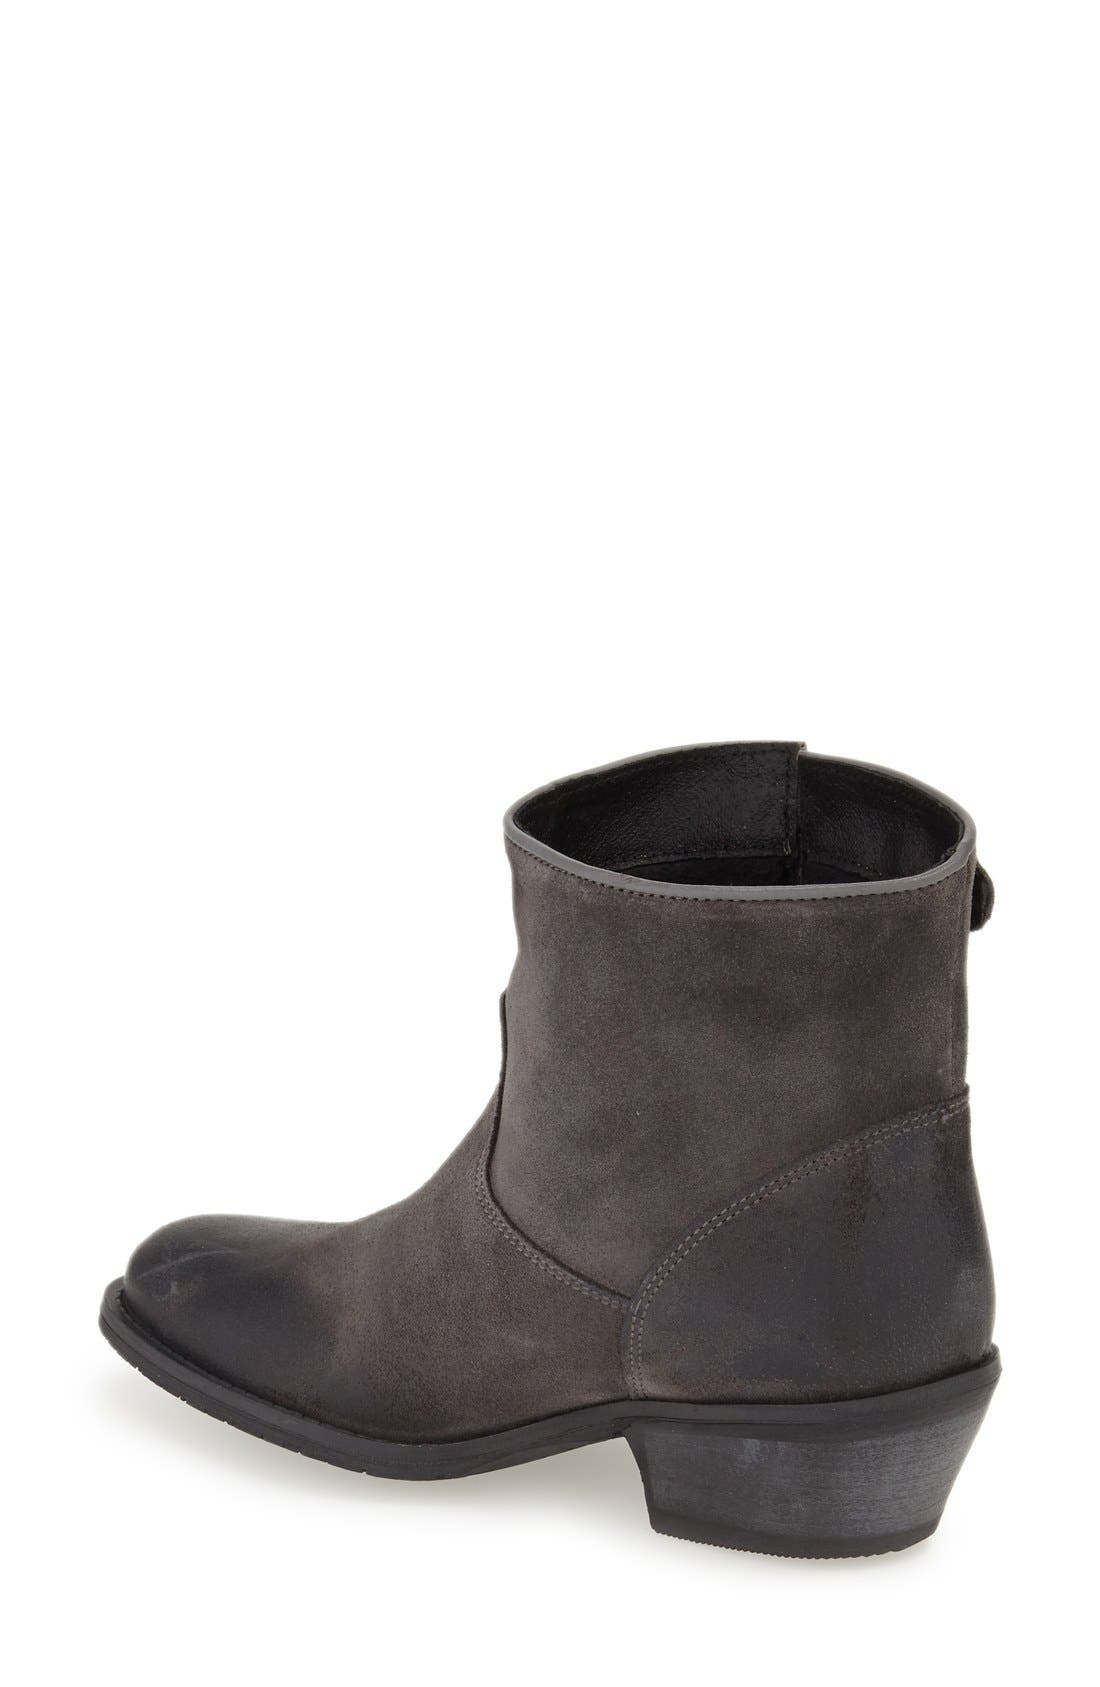 'Ramona' Waterproof Bootie,                             Alternate thumbnail 2, color,                             Grey Oil Suede